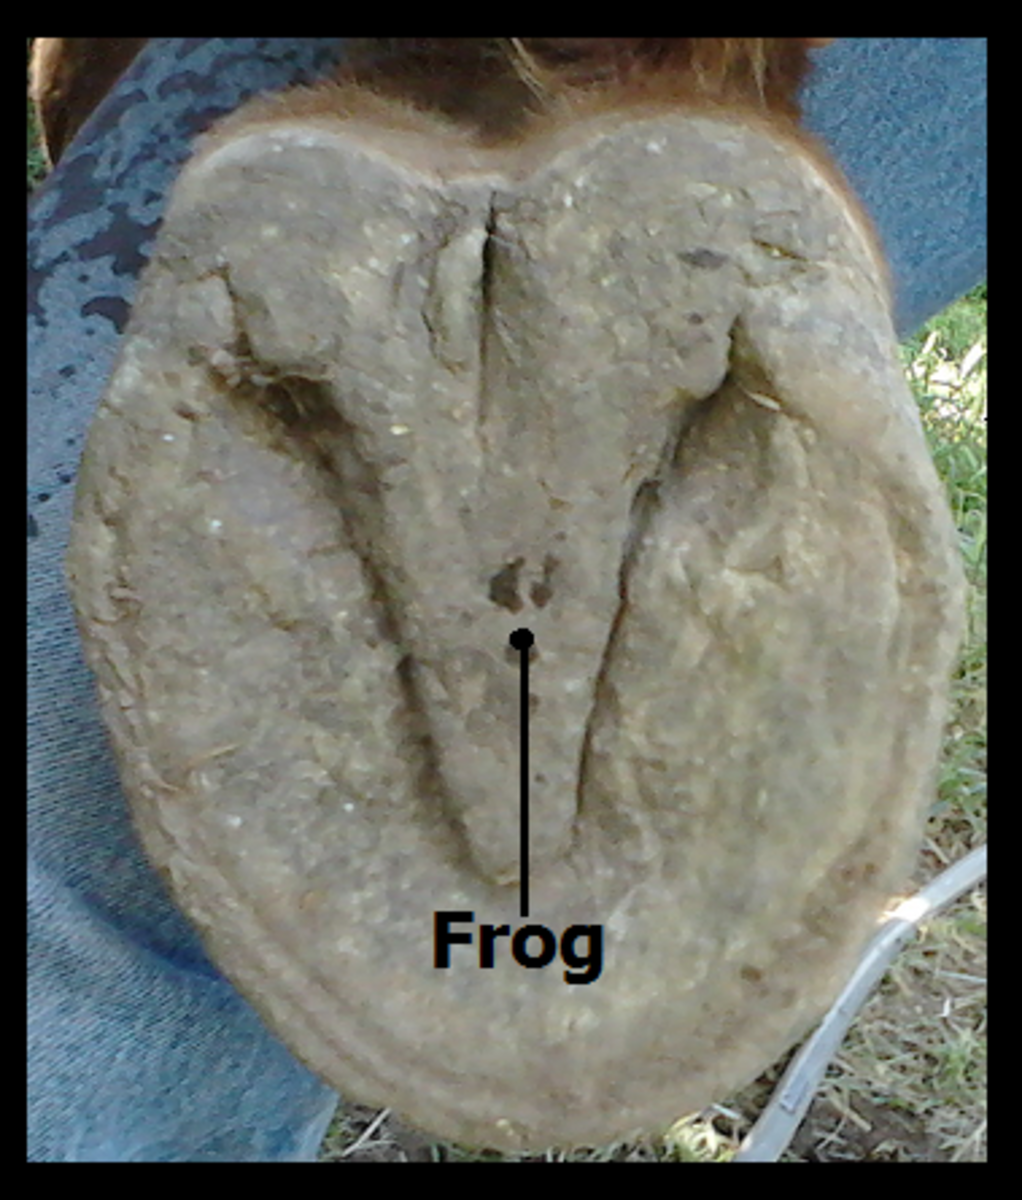 The Under-hoof.  Identifying the Frog (looks like an owl)